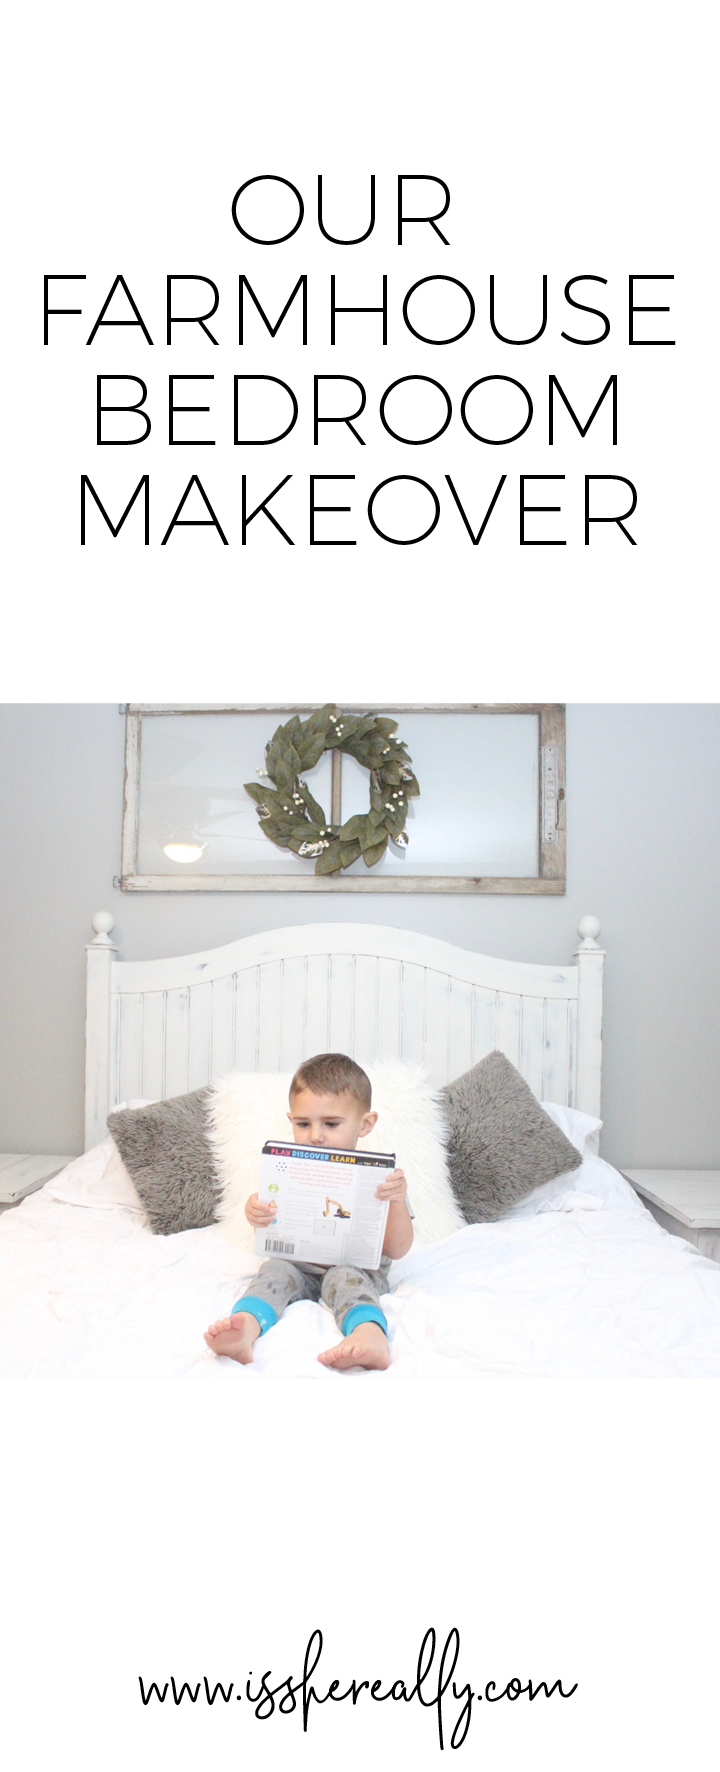 Simple and modern farmhouse master bedroom decor and makeover by @ginaekirk at www.isshereally.com